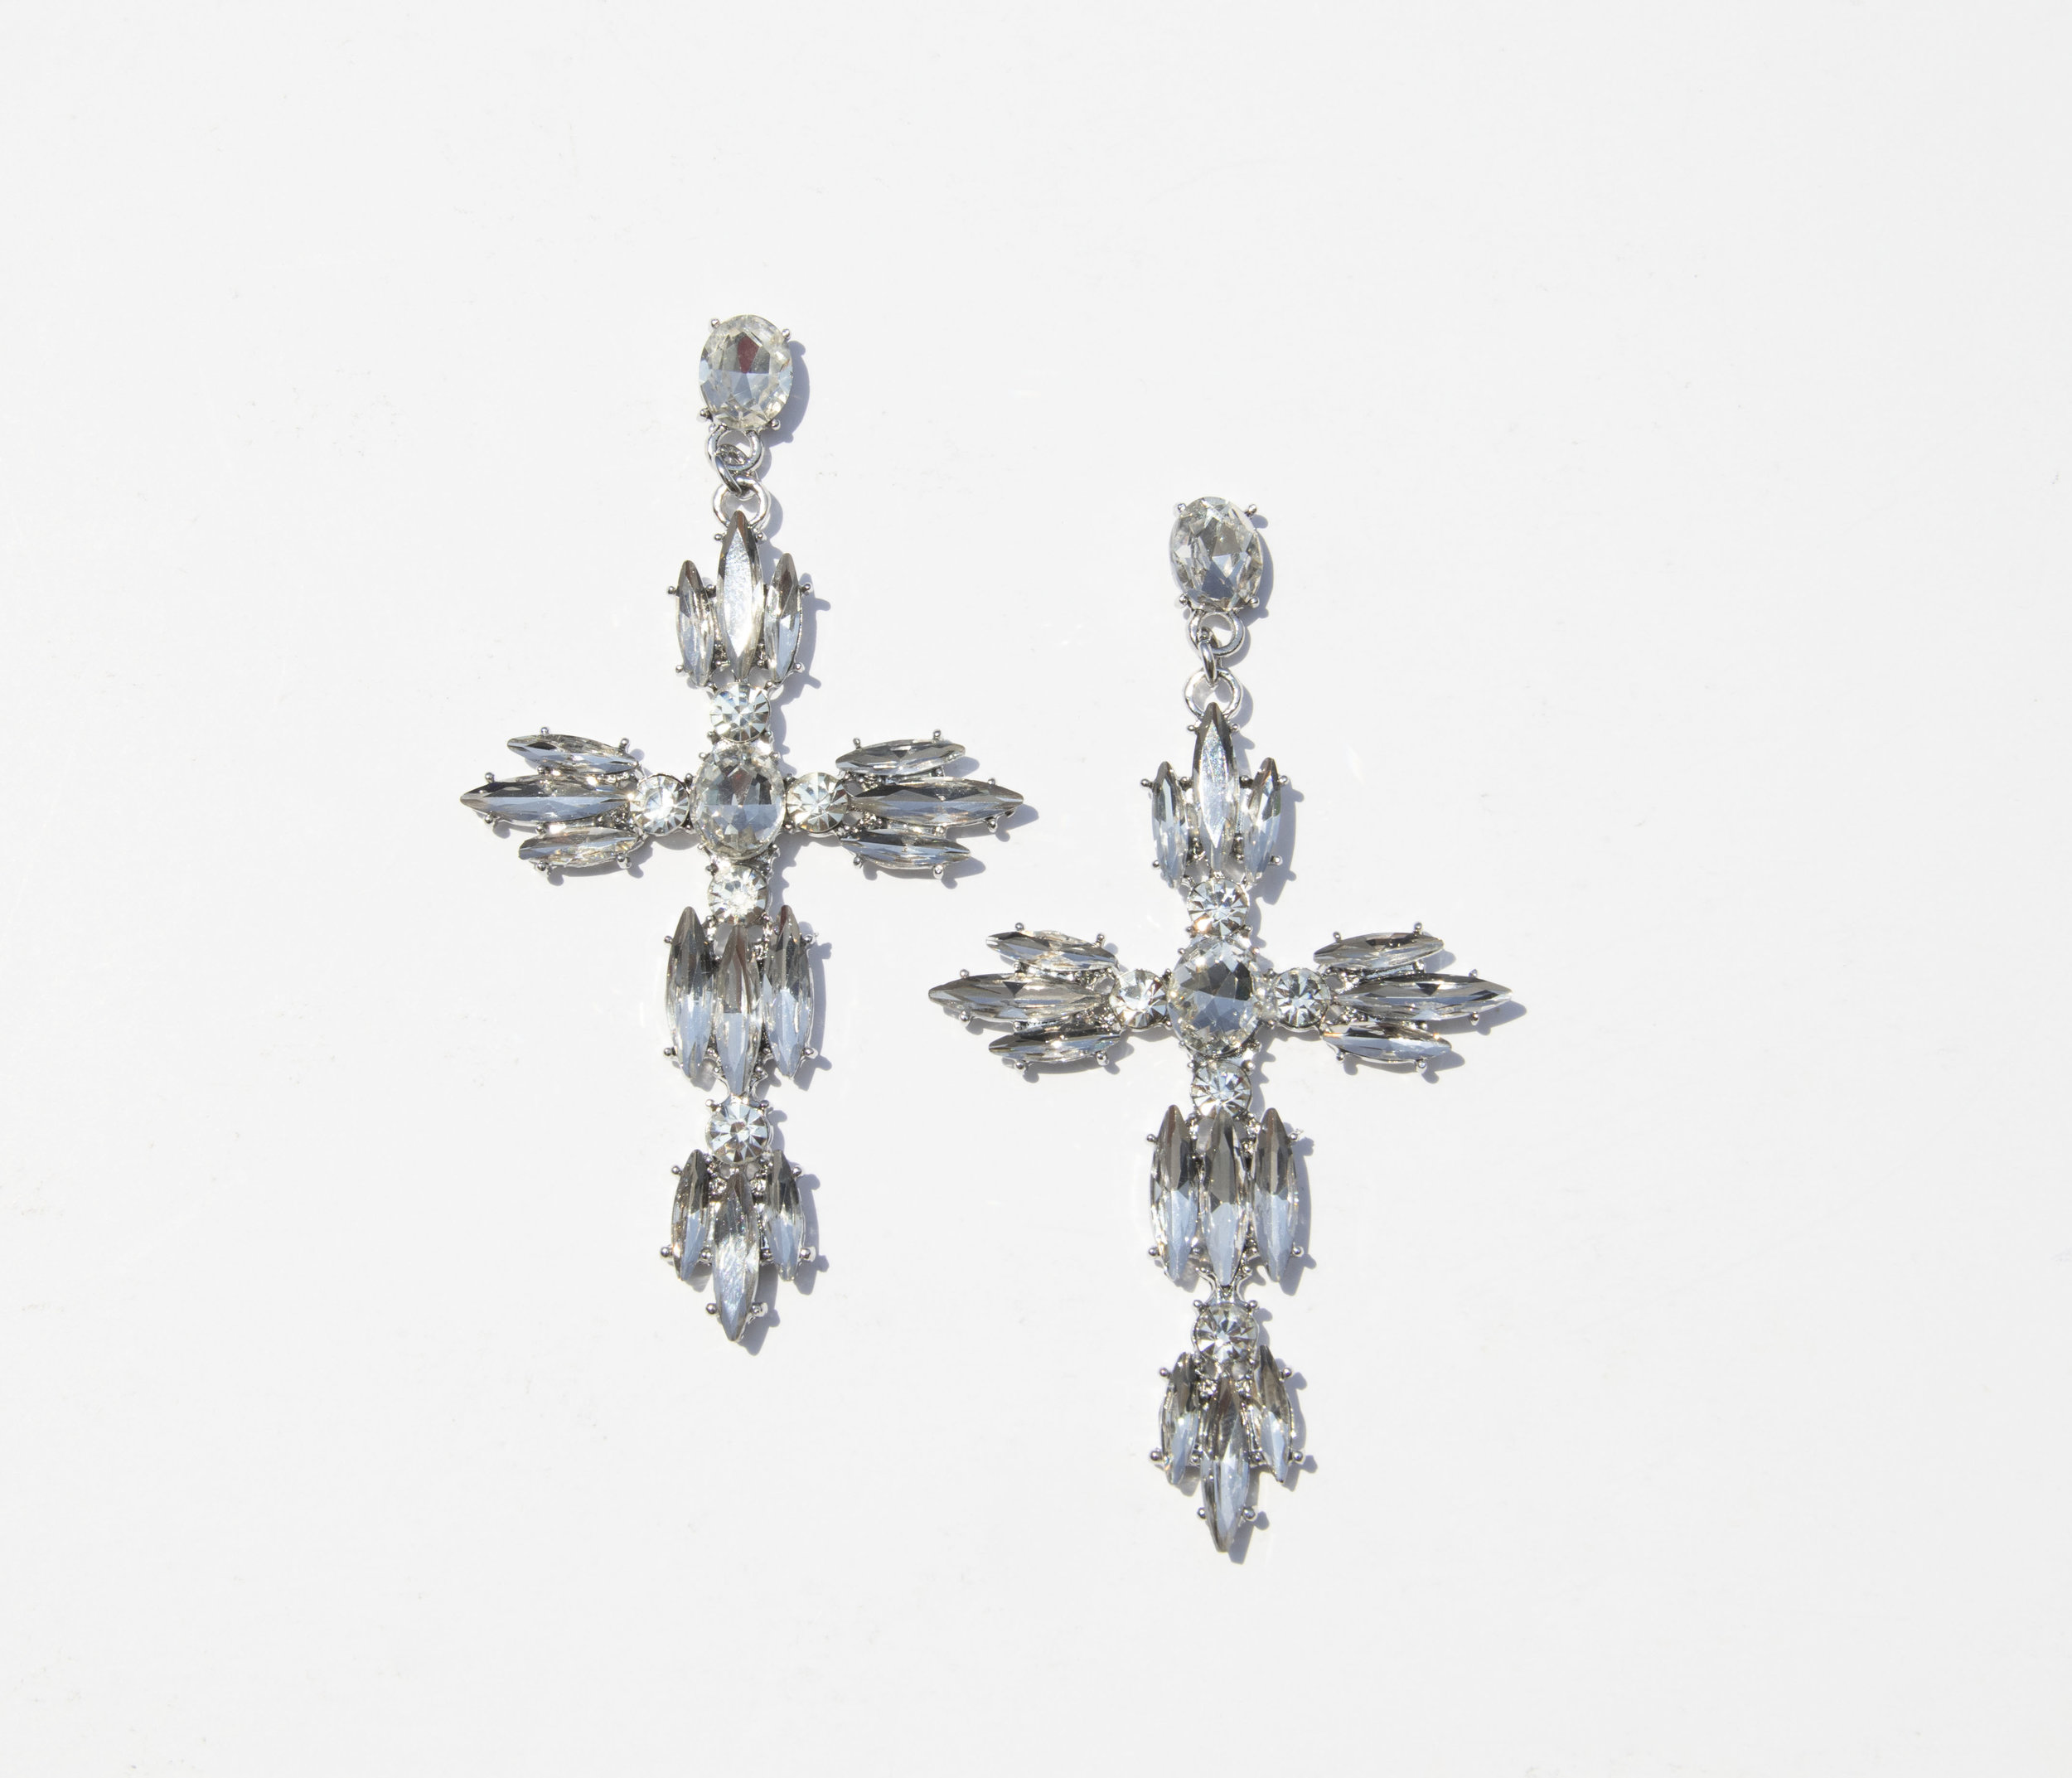 Holy Grail Earrings